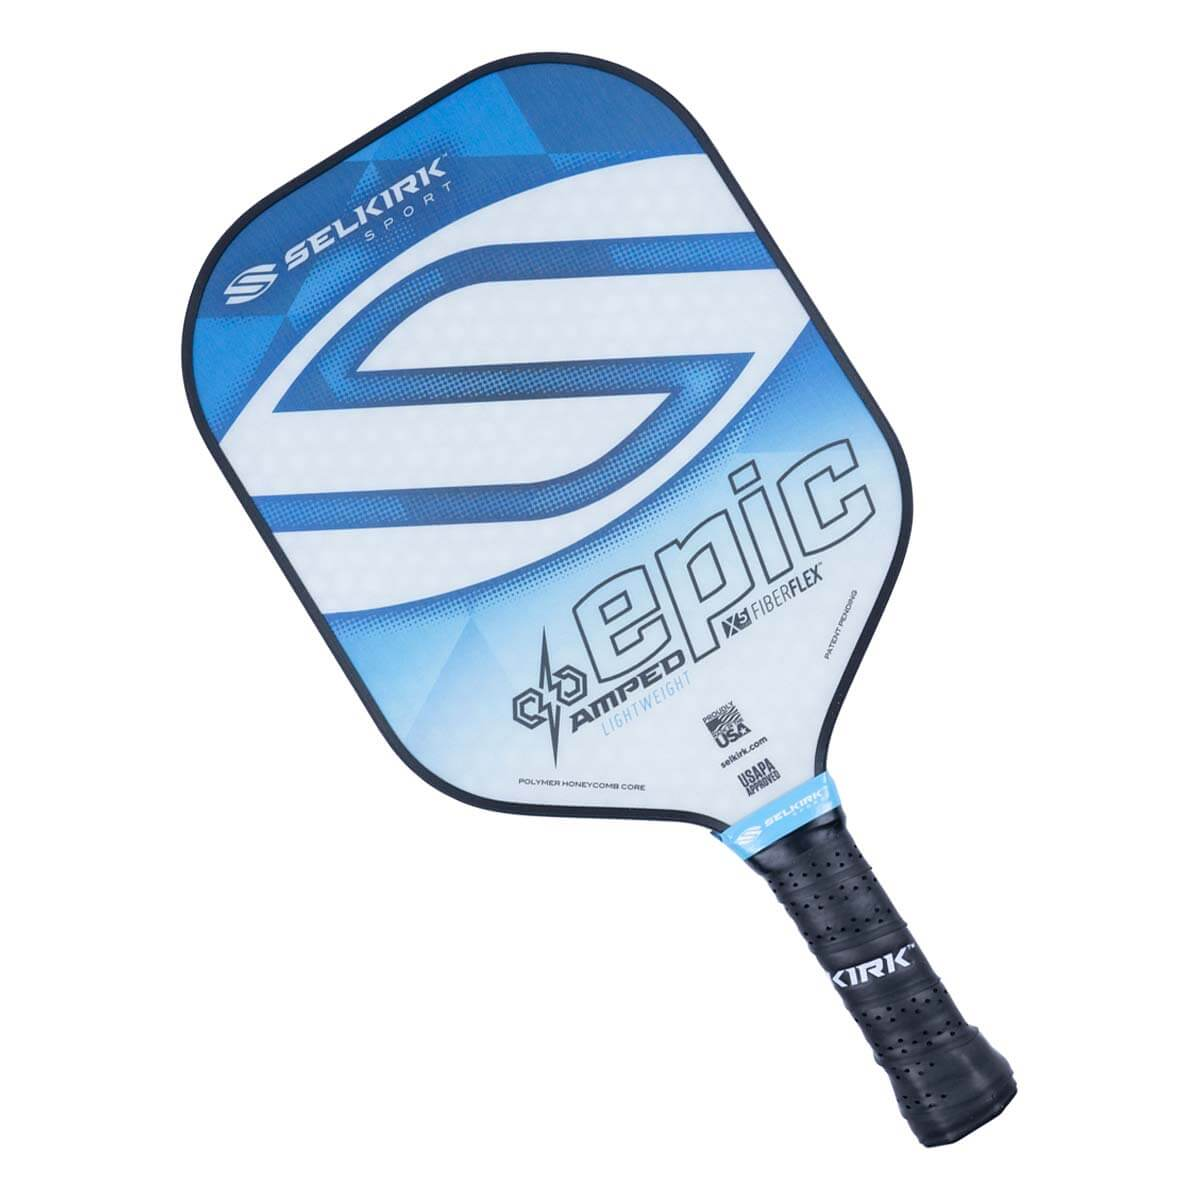 Selkirk Amped Epic Lightweight Composite Pickleball Paddle